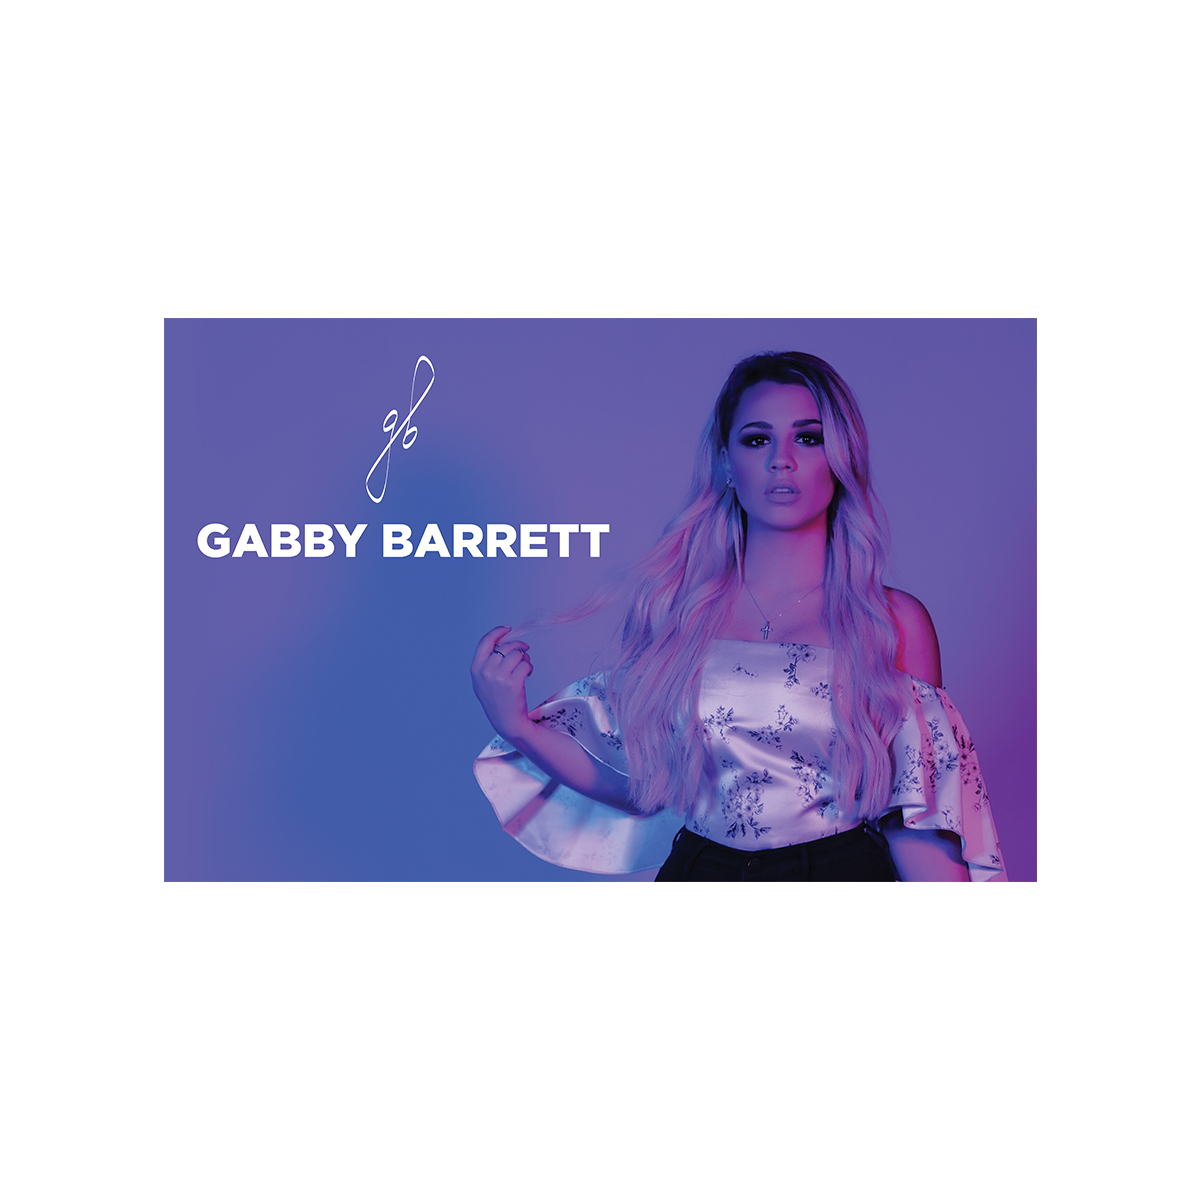 Gabby Barrett Photo Print